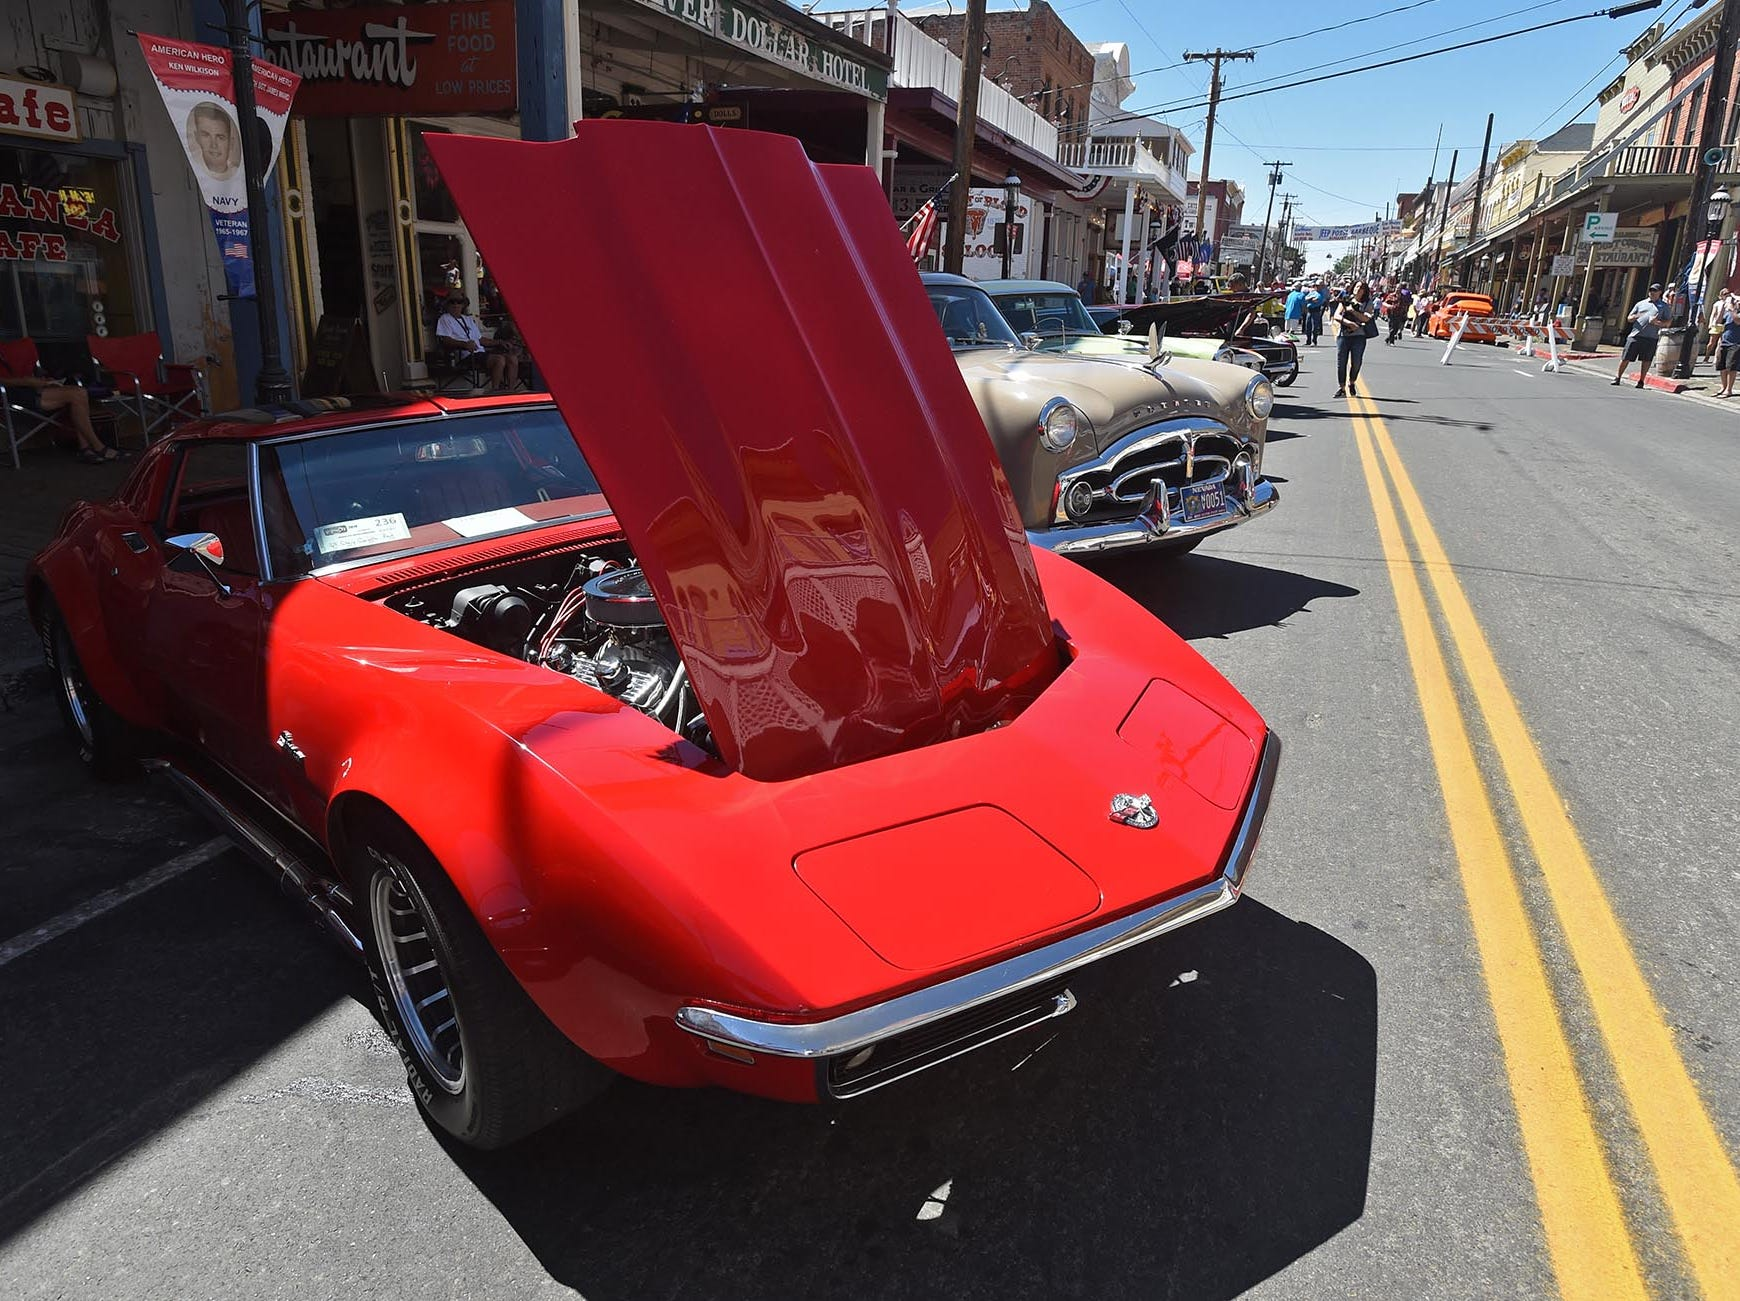 Classic cars line the streets of Virginia City on Friday, Aug. 3, 2018 as Hot August Nights gets rolling.